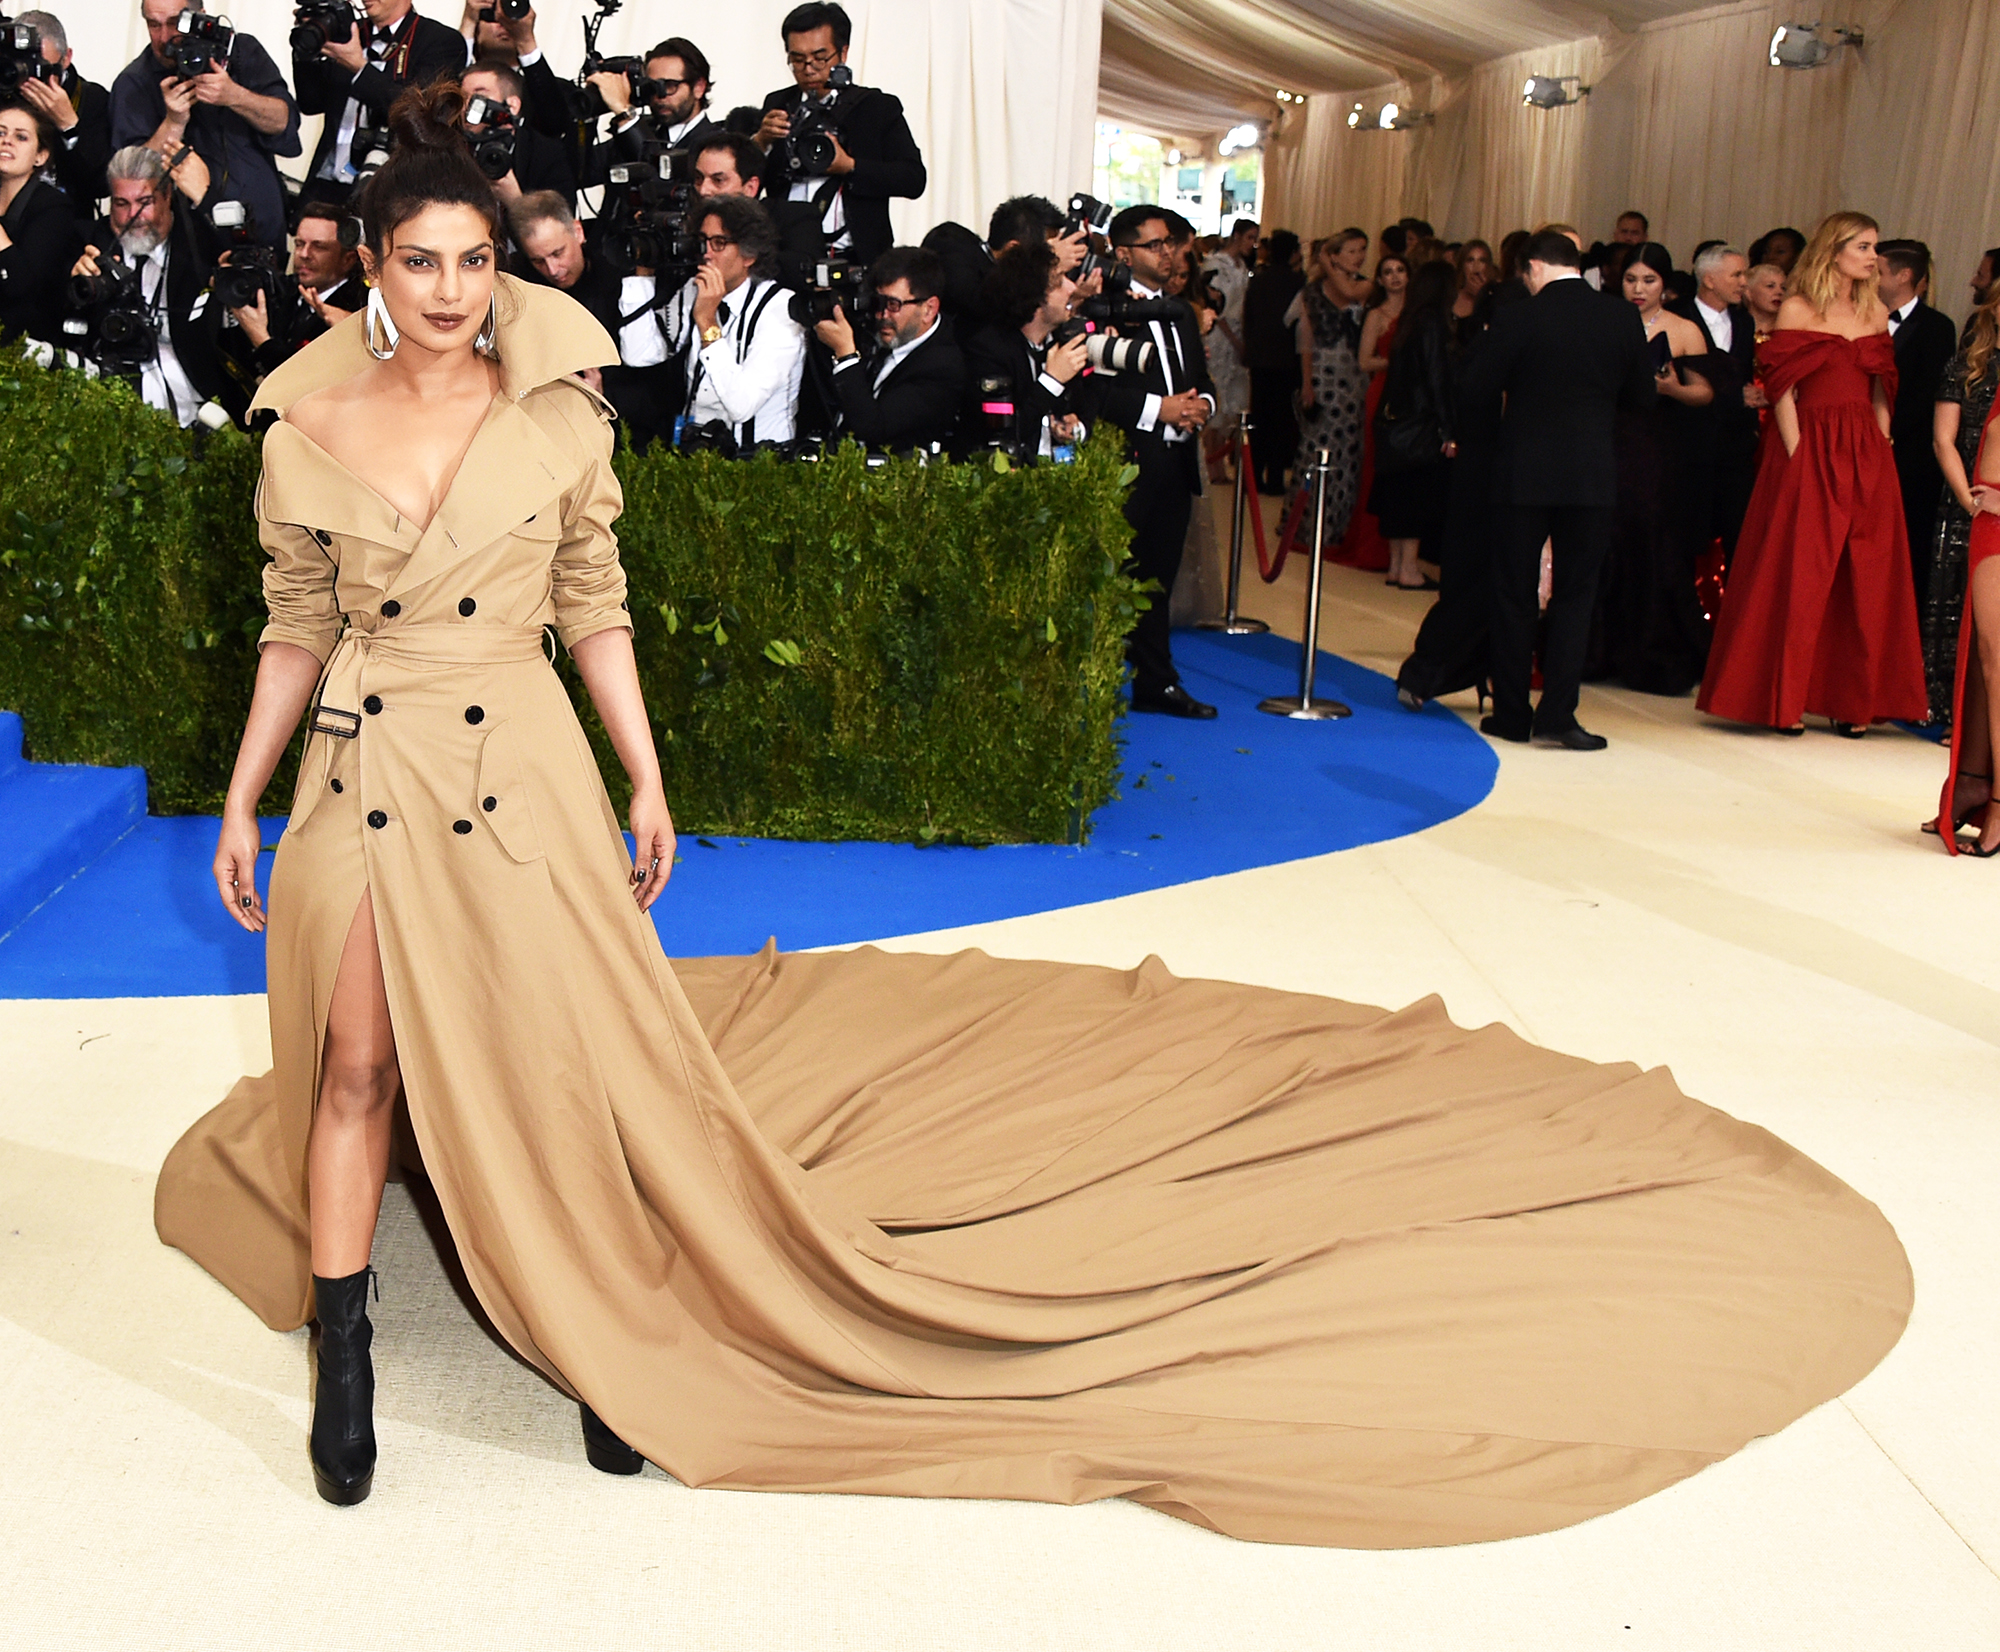 Priyanka Chopra attends The Metropolitan Museum of Art's Costume Institute benefit gala celebrating the opening of the Rei Kawakubo/Comme des Garçons: Art of the In-Between exhibition in New York City, on May 1, 2017.